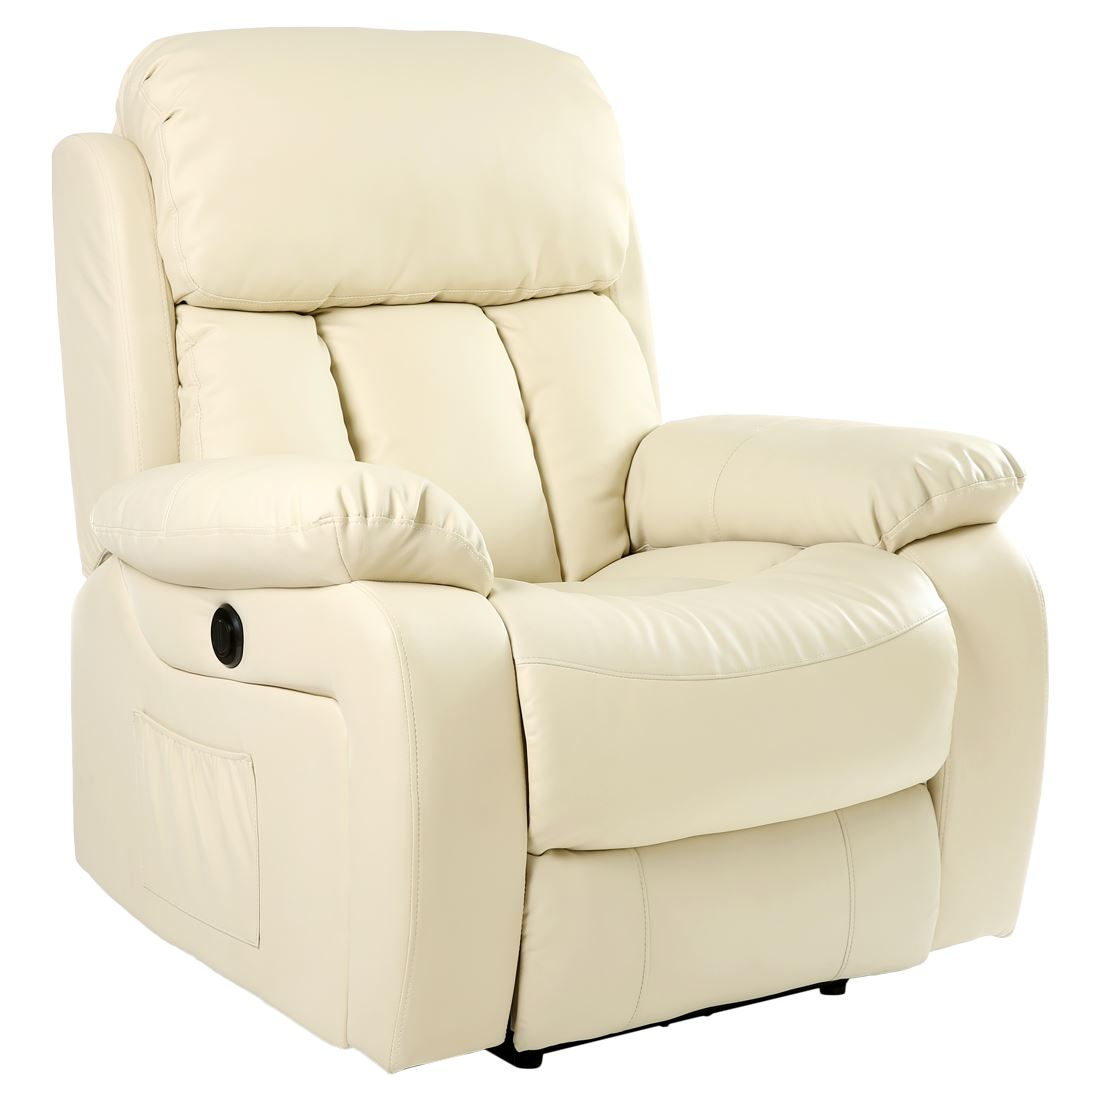 electric recliner sofa not working century quality chester heated leather massage chair